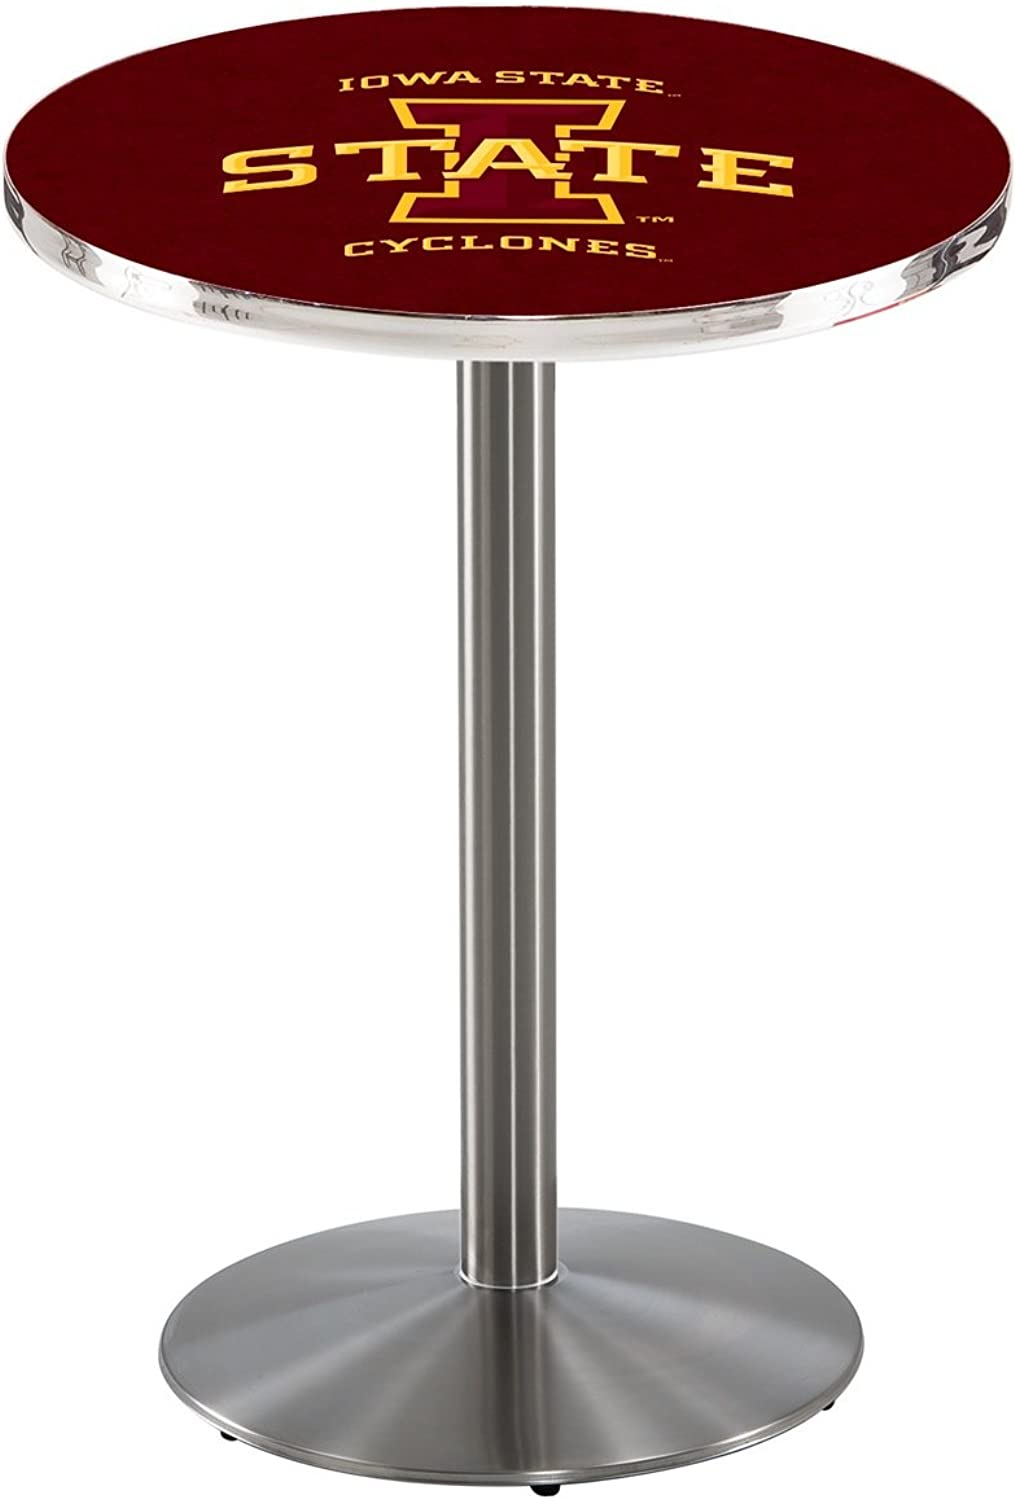 L21436  Stainless Steel Iowa State Pub Table by Holland Bar Stool Co.